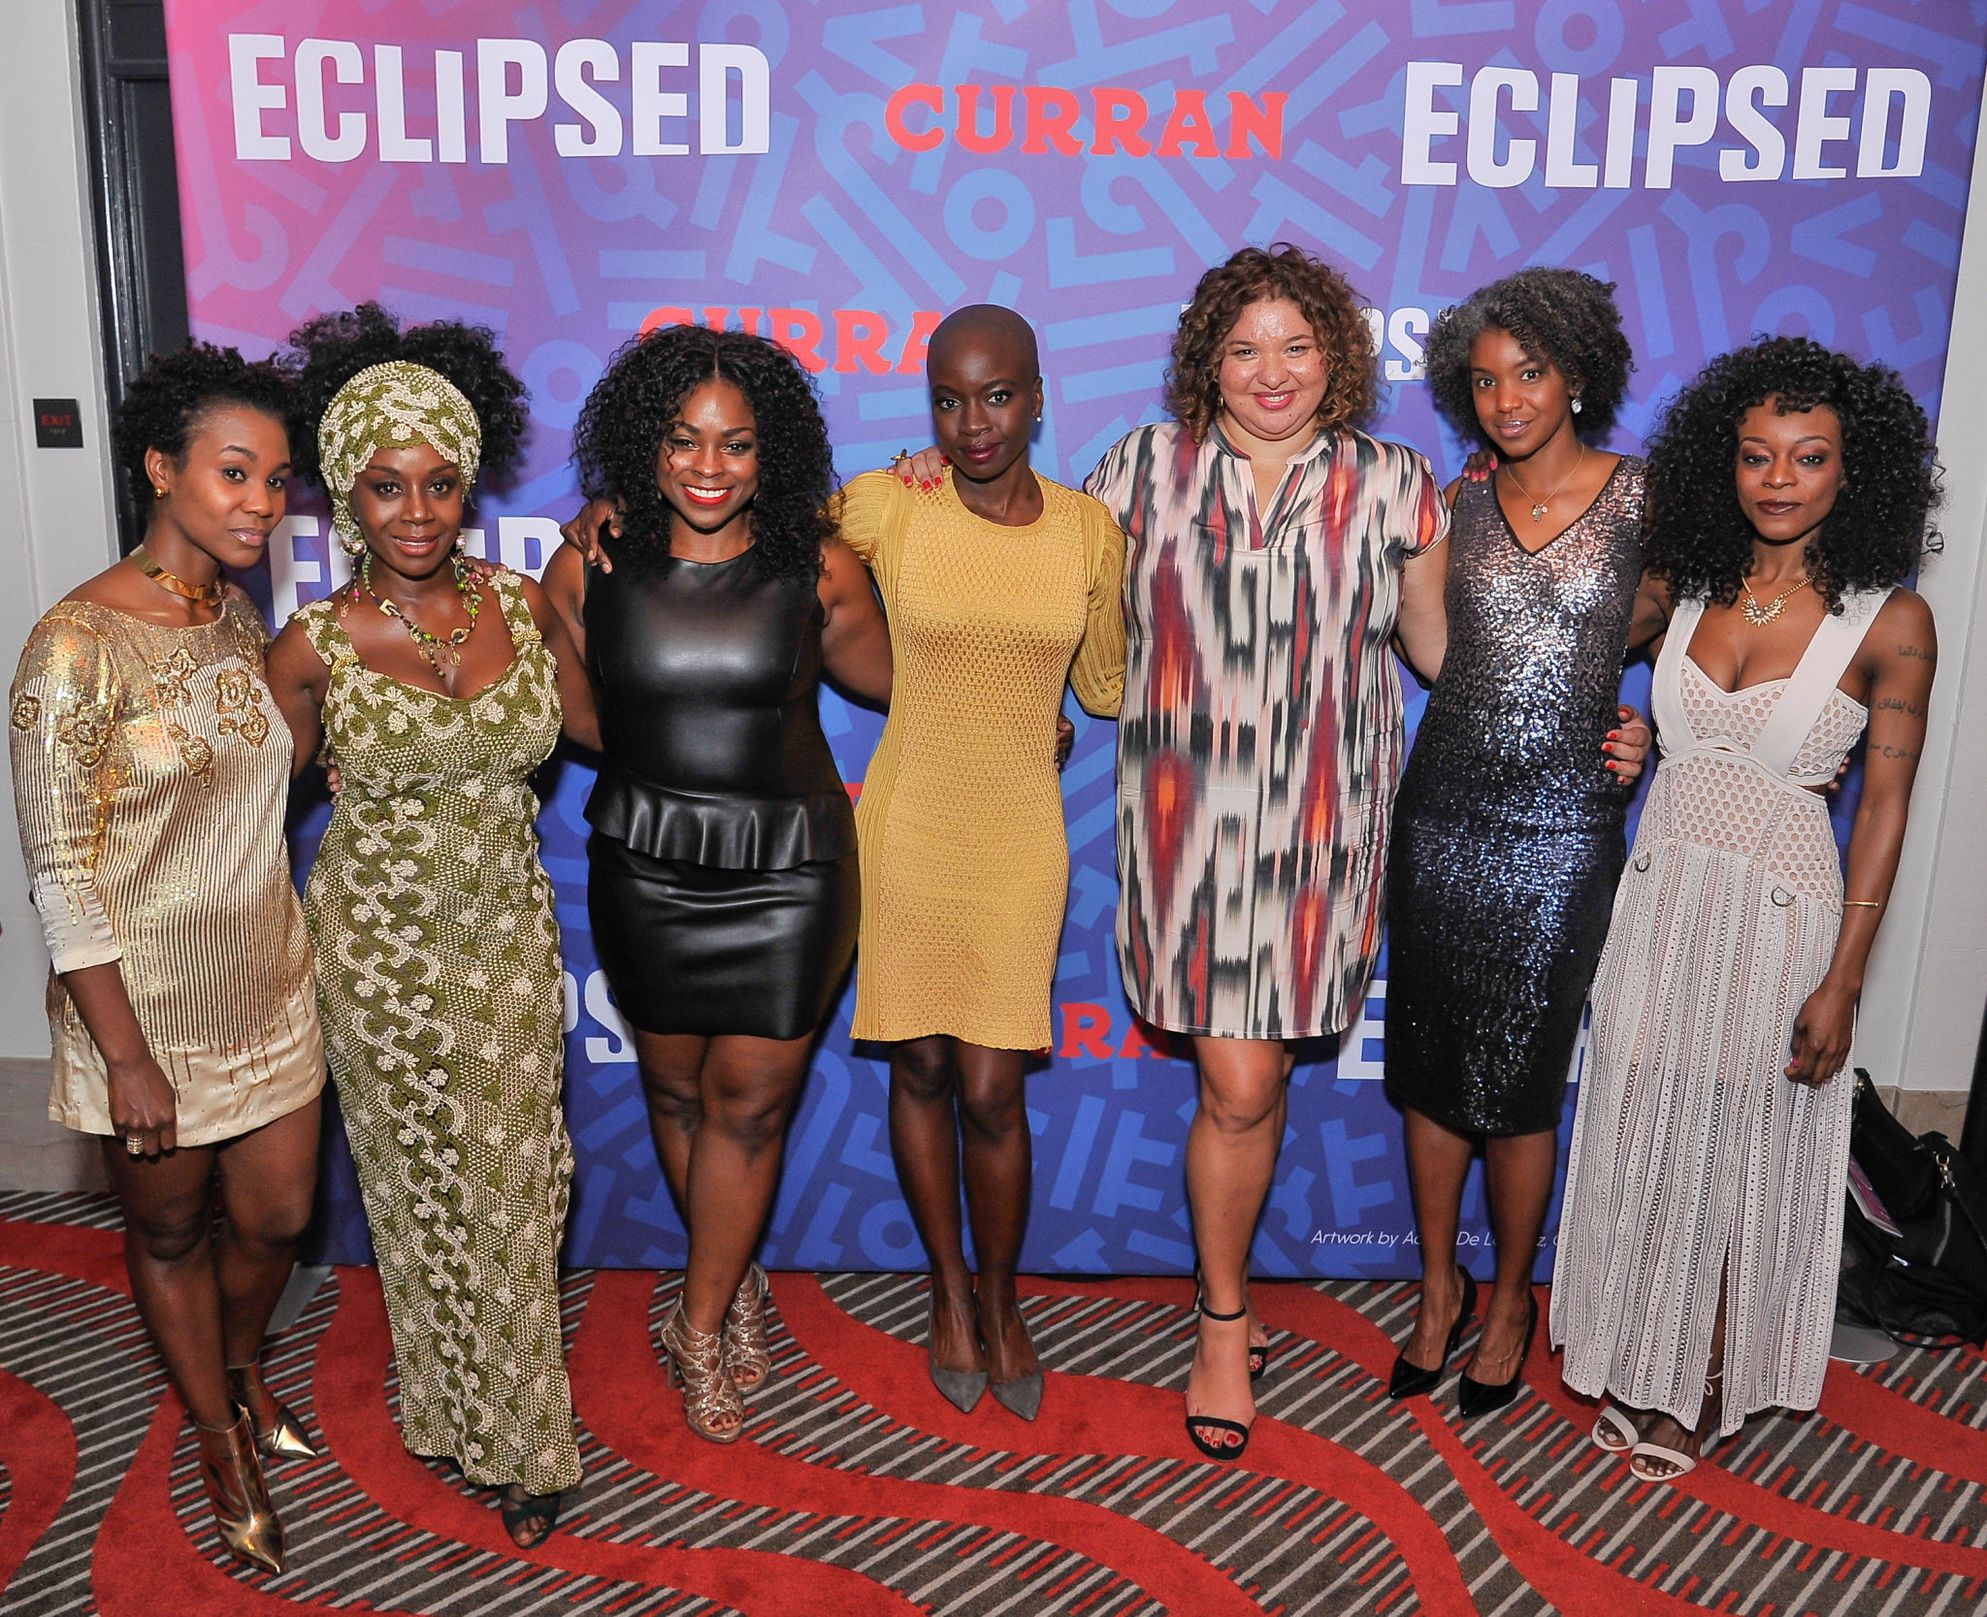 Eclipsed Opening Night at Curran Theater